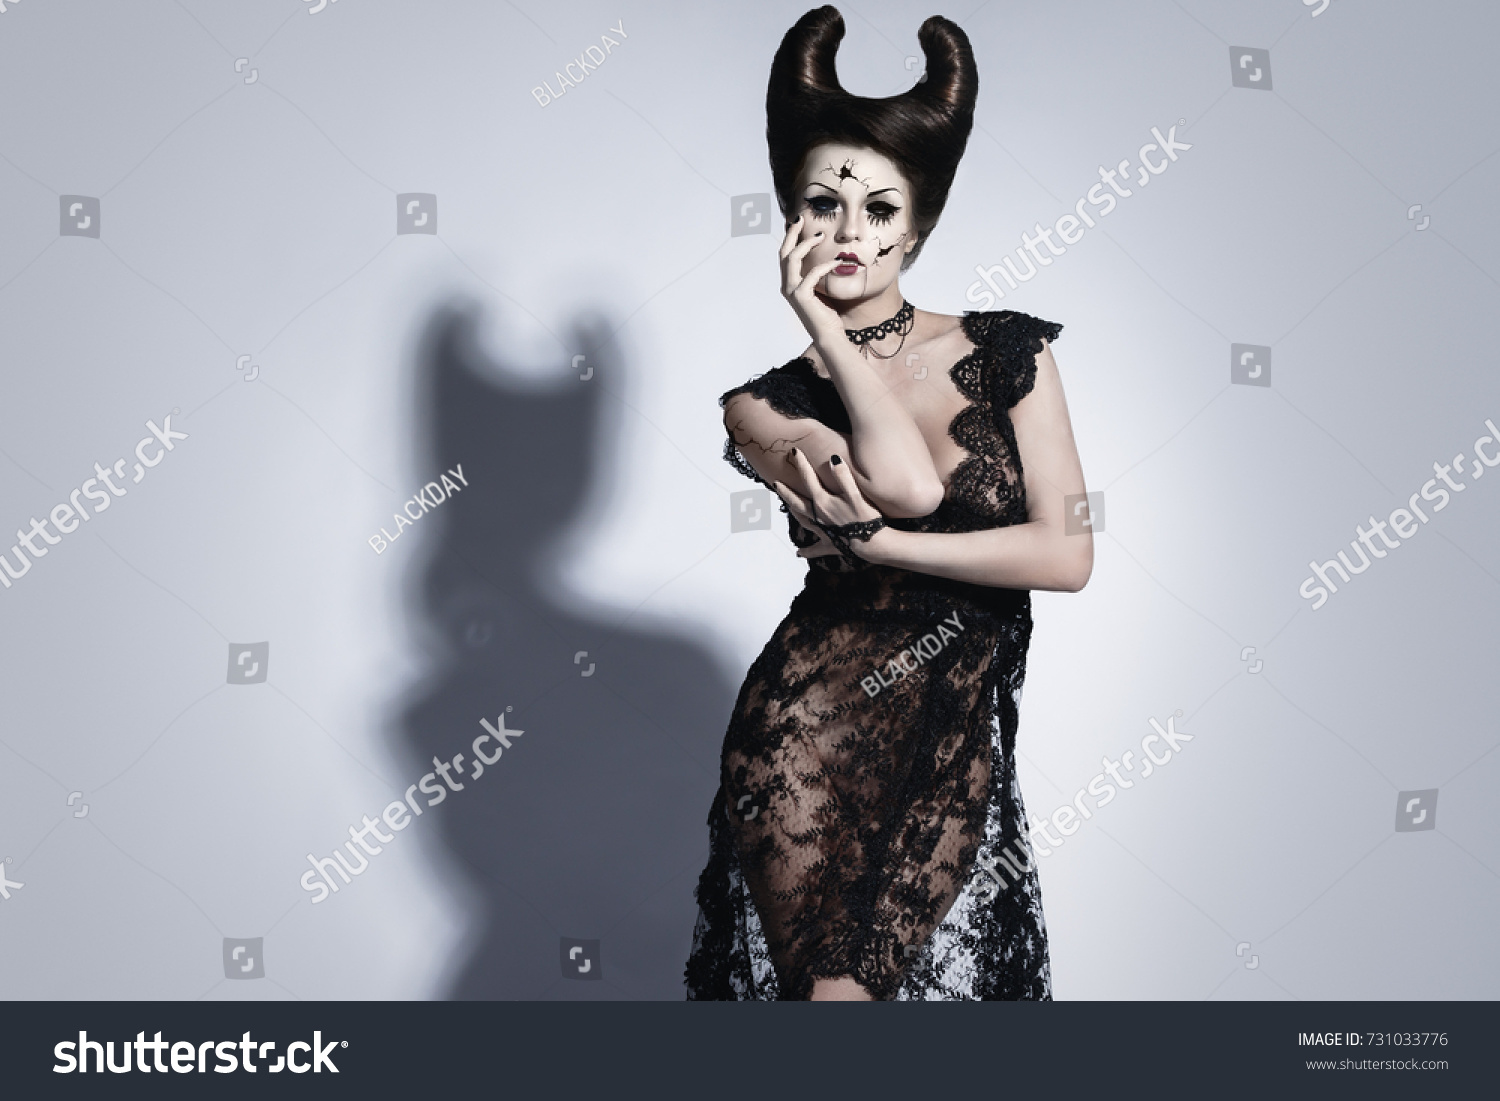 model in creative image for halloween spooky porcelain doll with horns on her head